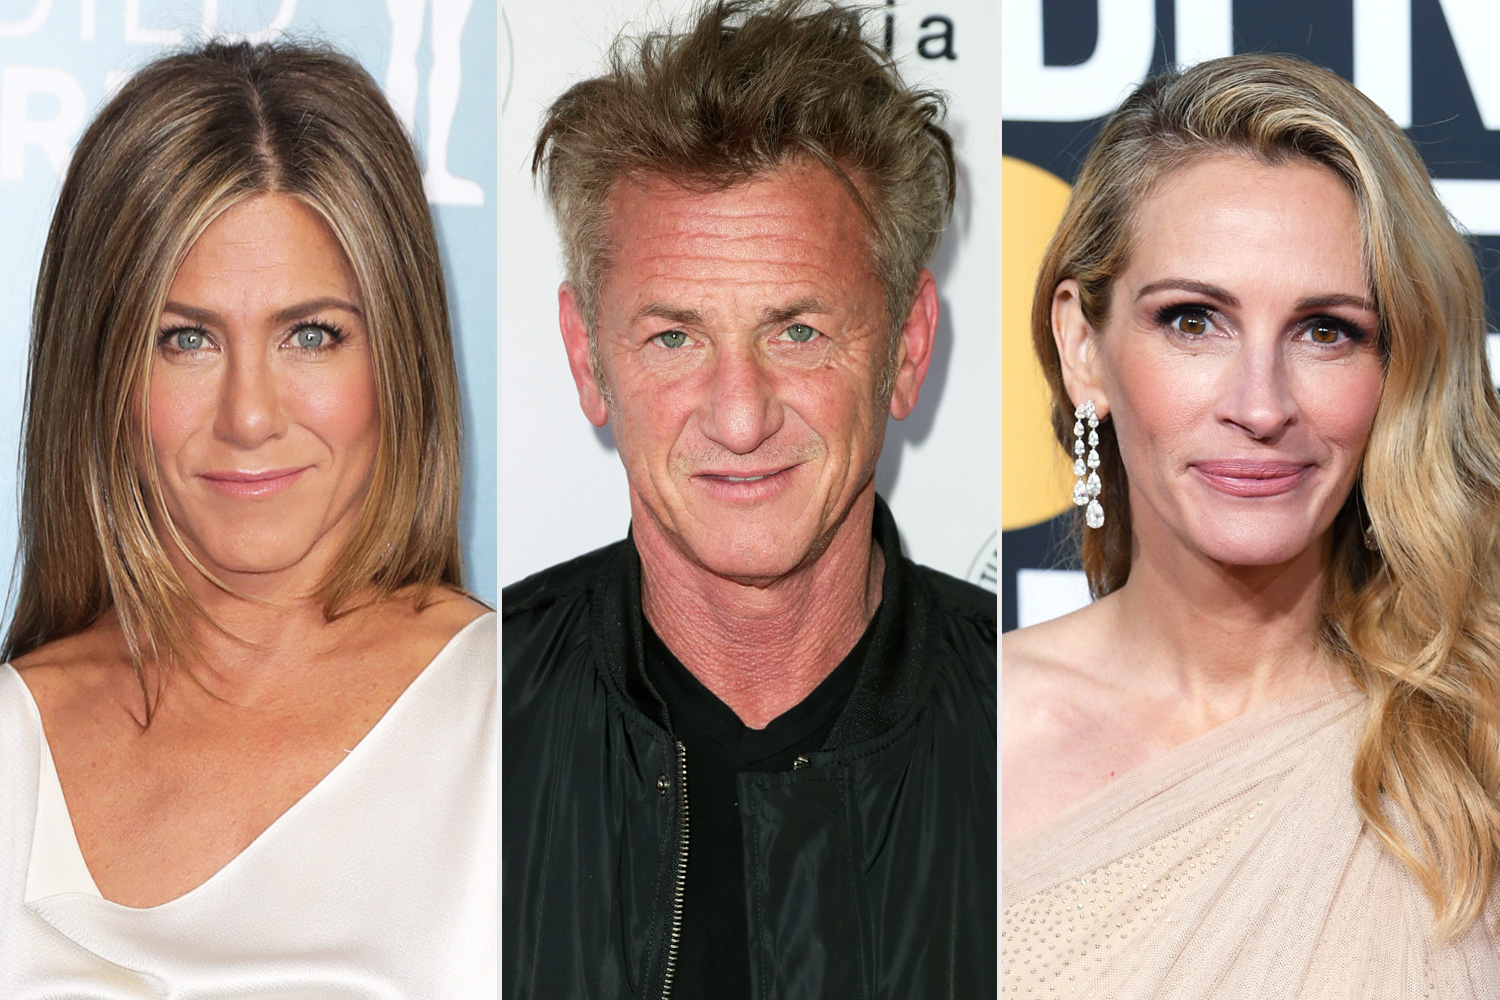 A-List cast for Fast Times at Ridgemont High Table Read for Charity including Jennifer Aniston, Sean Penn, Julia Roberts